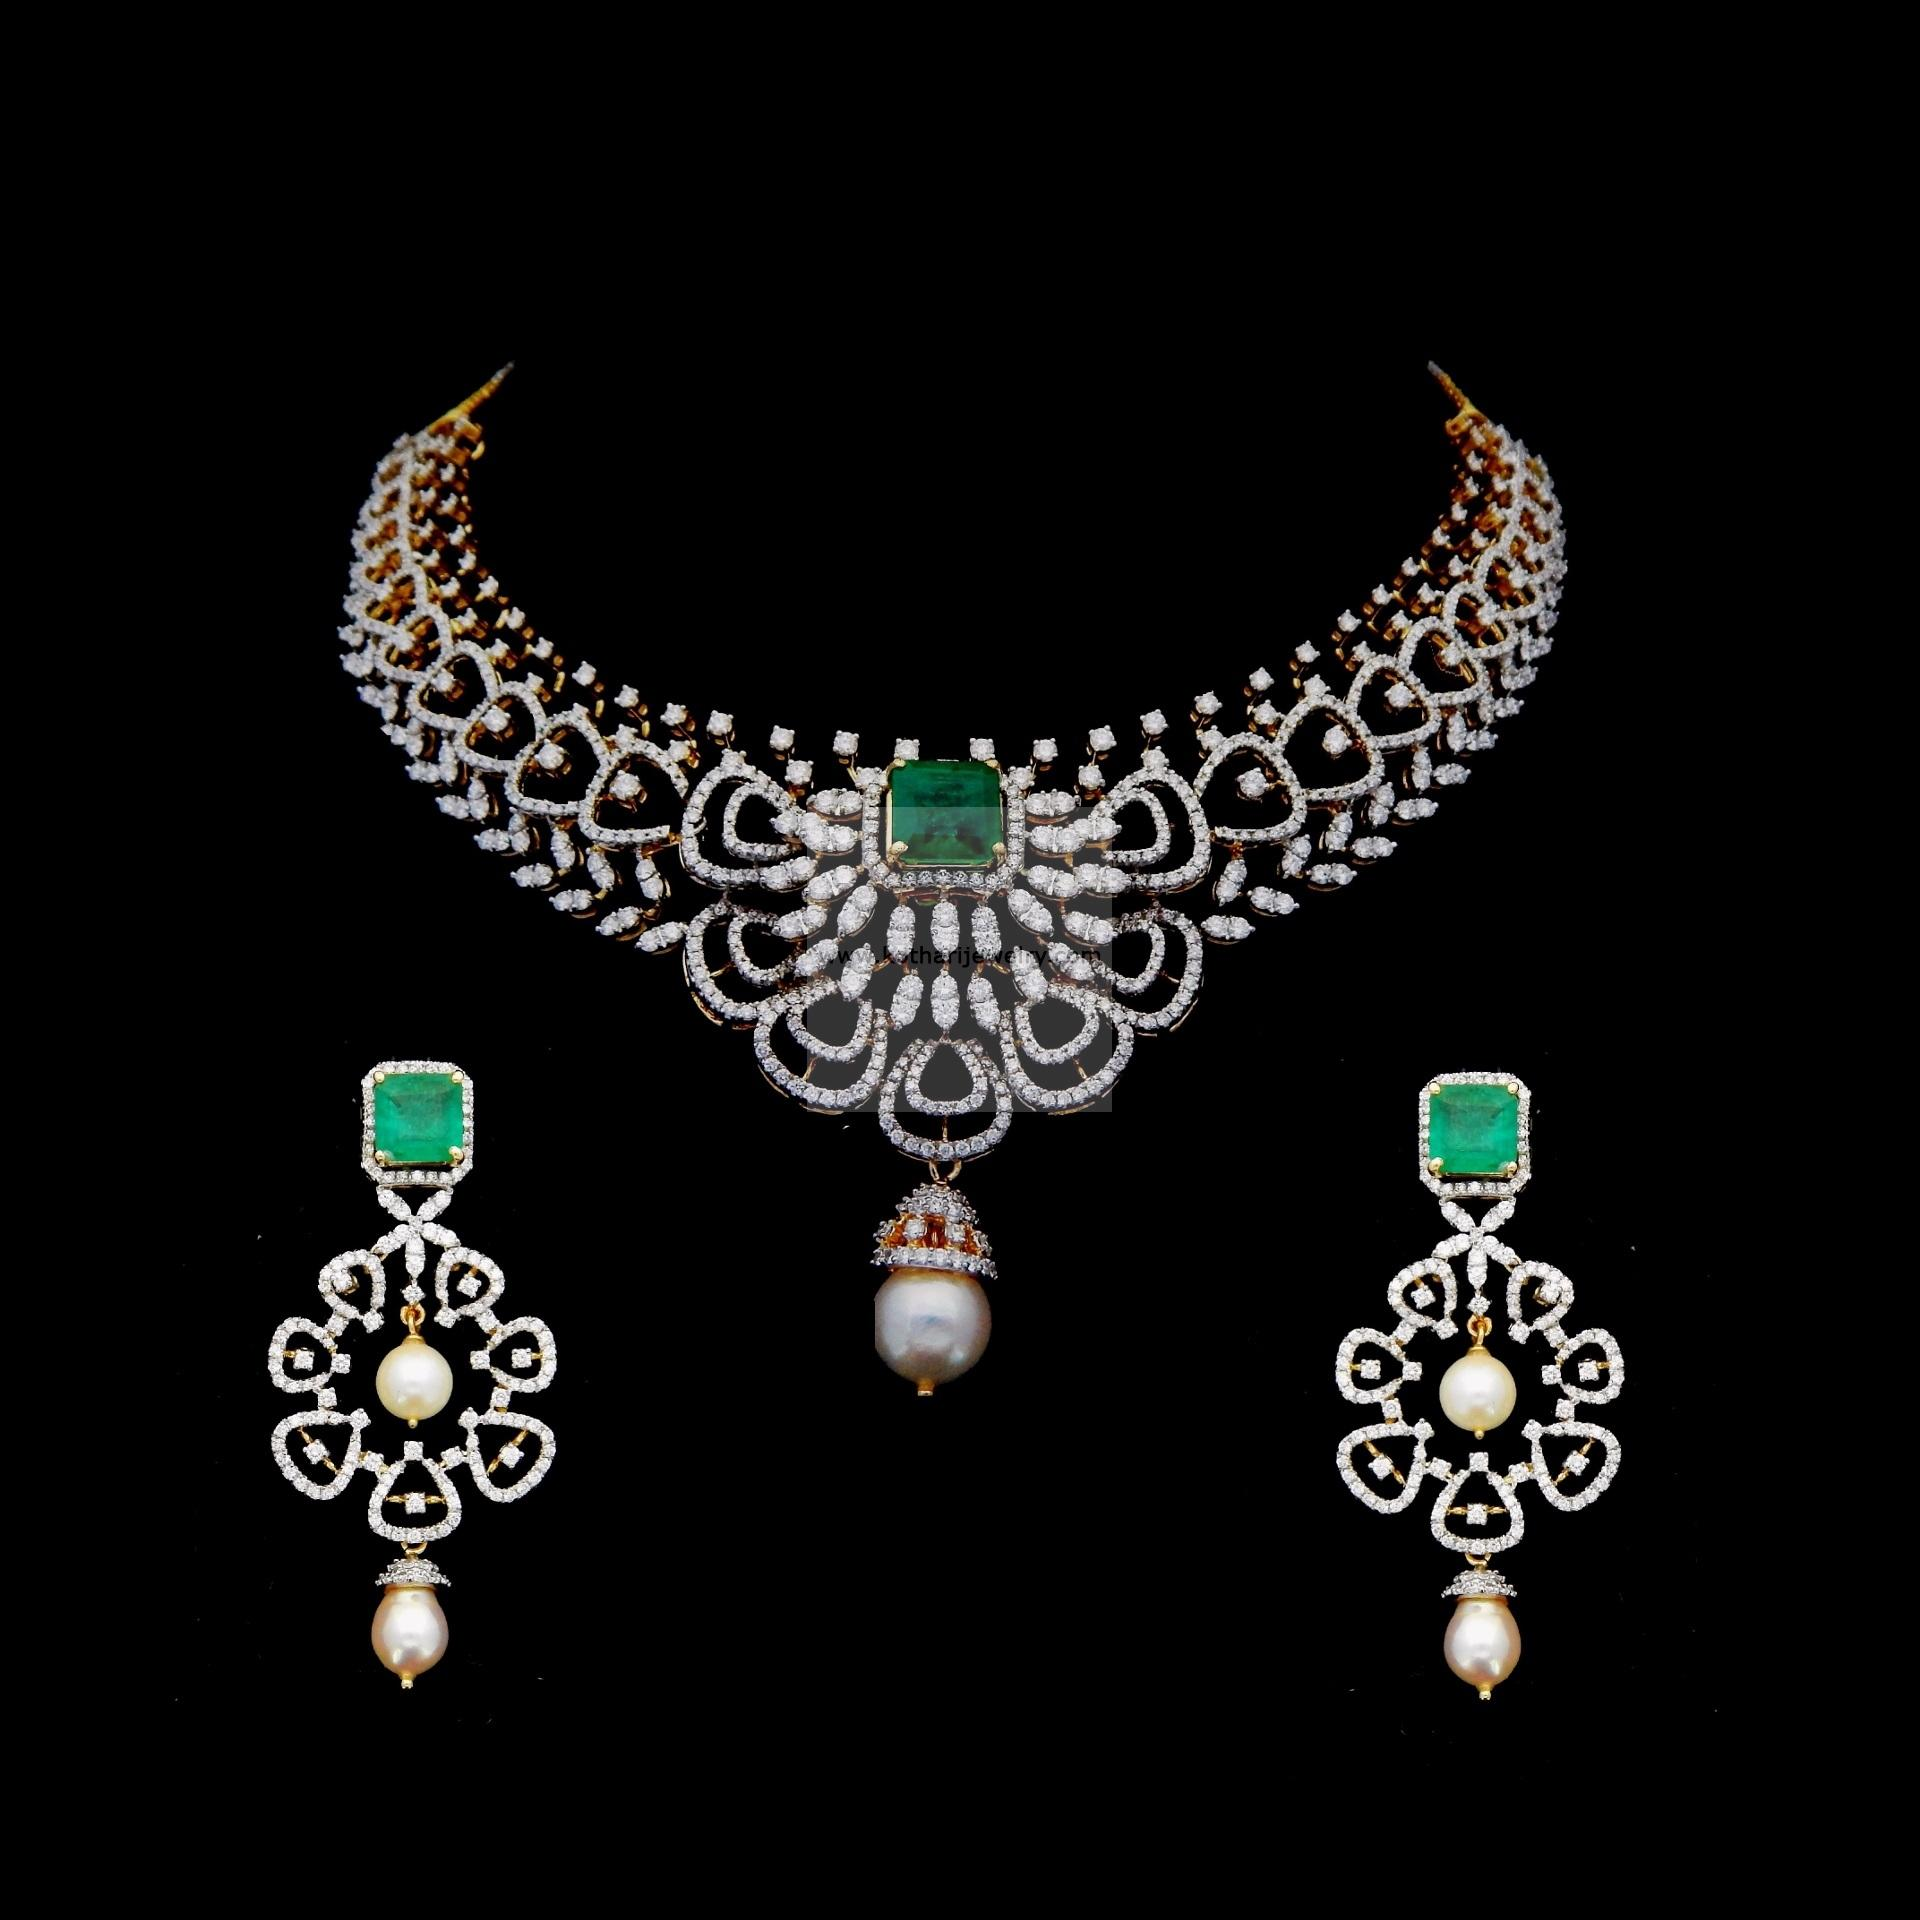 diamond in three worlds tags s top auction indian switzerland from topshots most diamonds did that blog posted are expensive india you world know jewelry the april